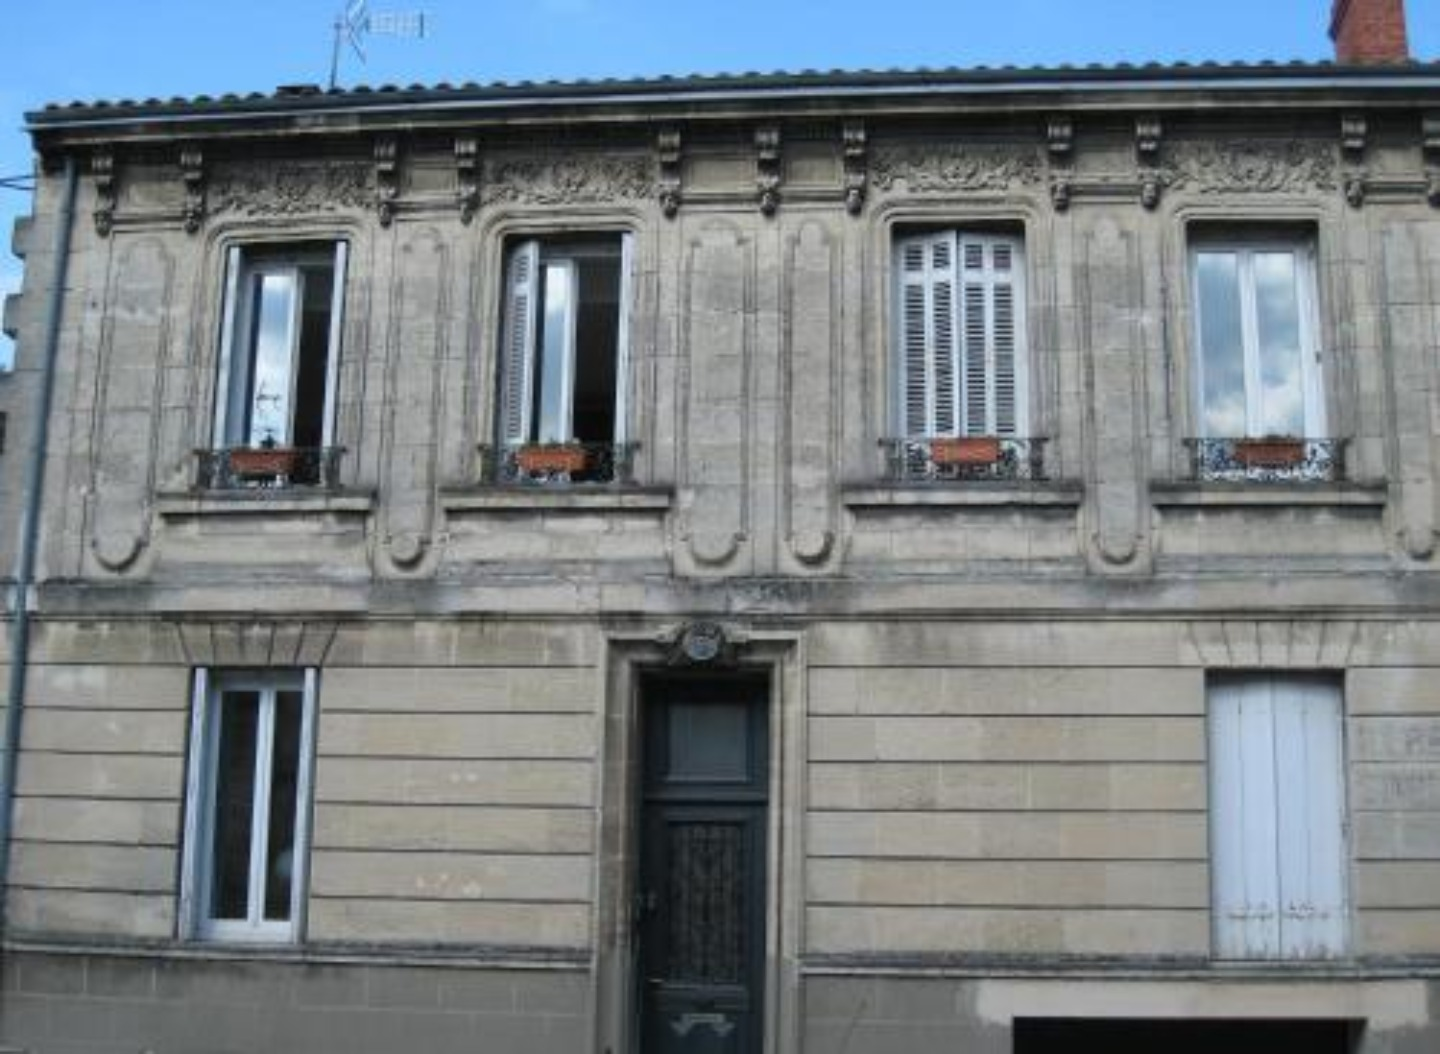 A person standing in front of a building at La Maison Bastide.